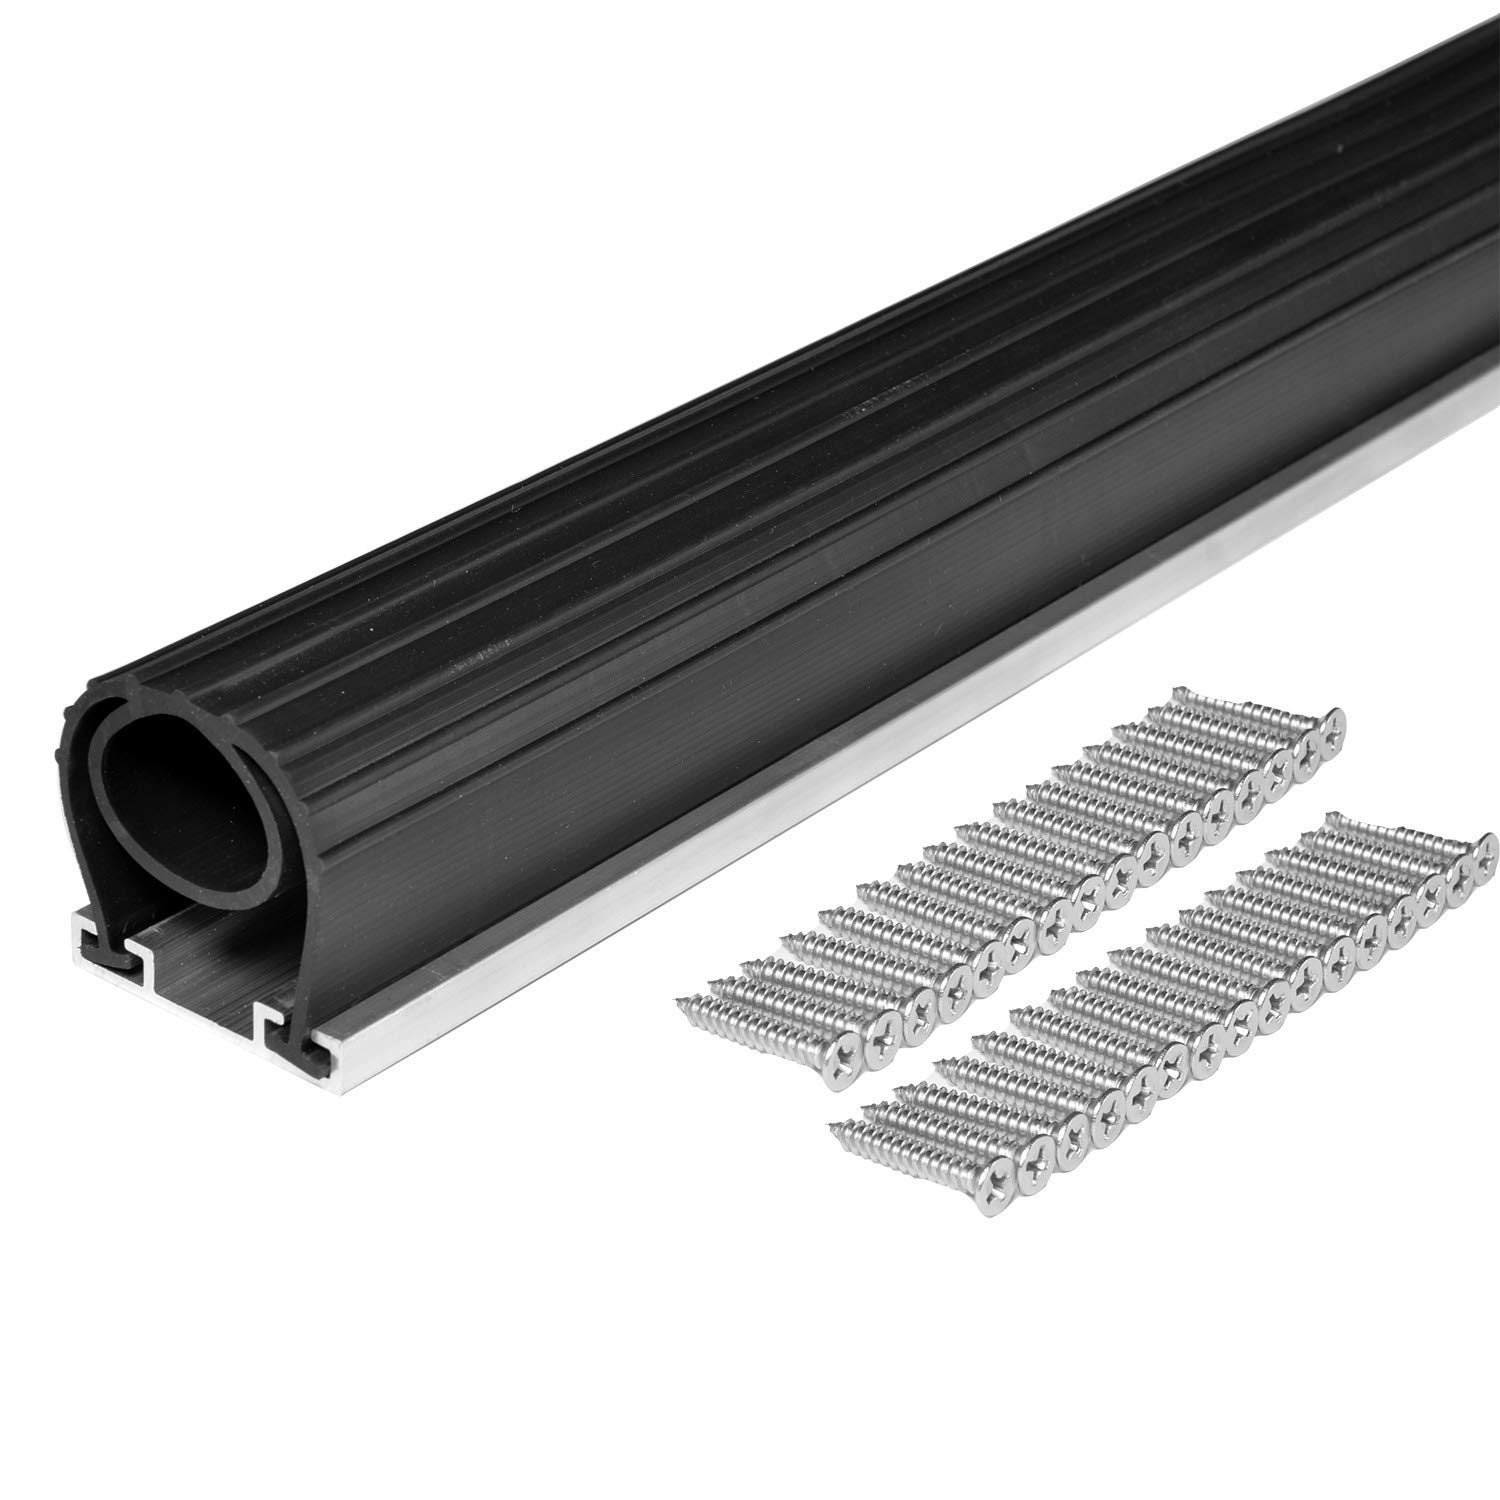 BOWSEN 20FT Heavy-Duty U+O Ring Universal Garage Door Bottom Seals Rubber Weatherstrip with Aluminum Track Retainer Kit by BOWSEN